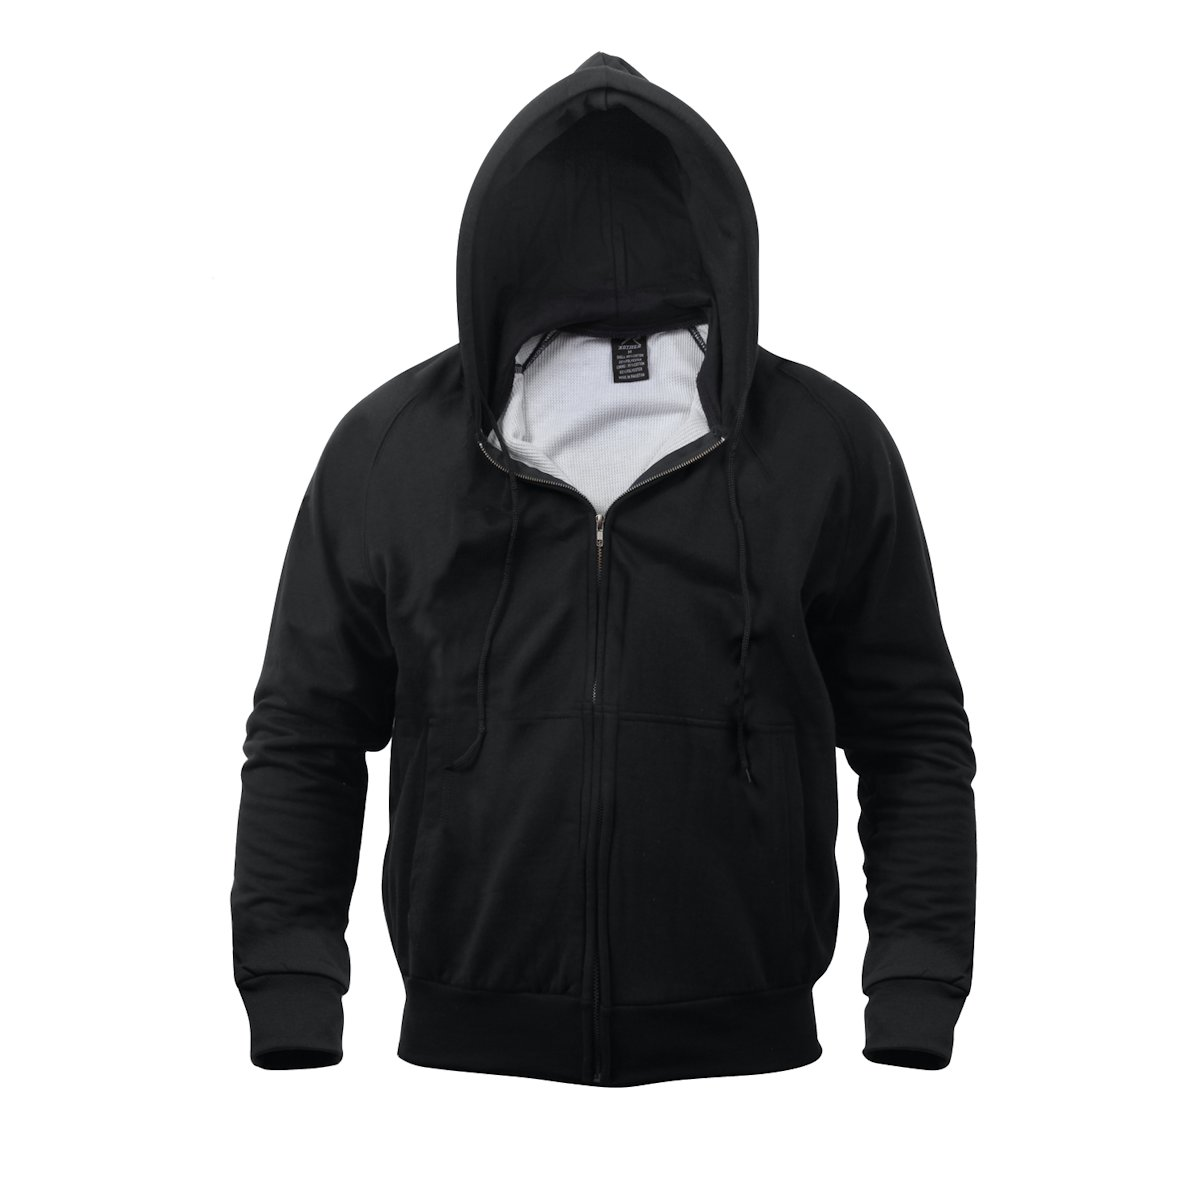 Thermal Lined Zipper Hooded Sweatshirt, Black, Large - Walmart.com